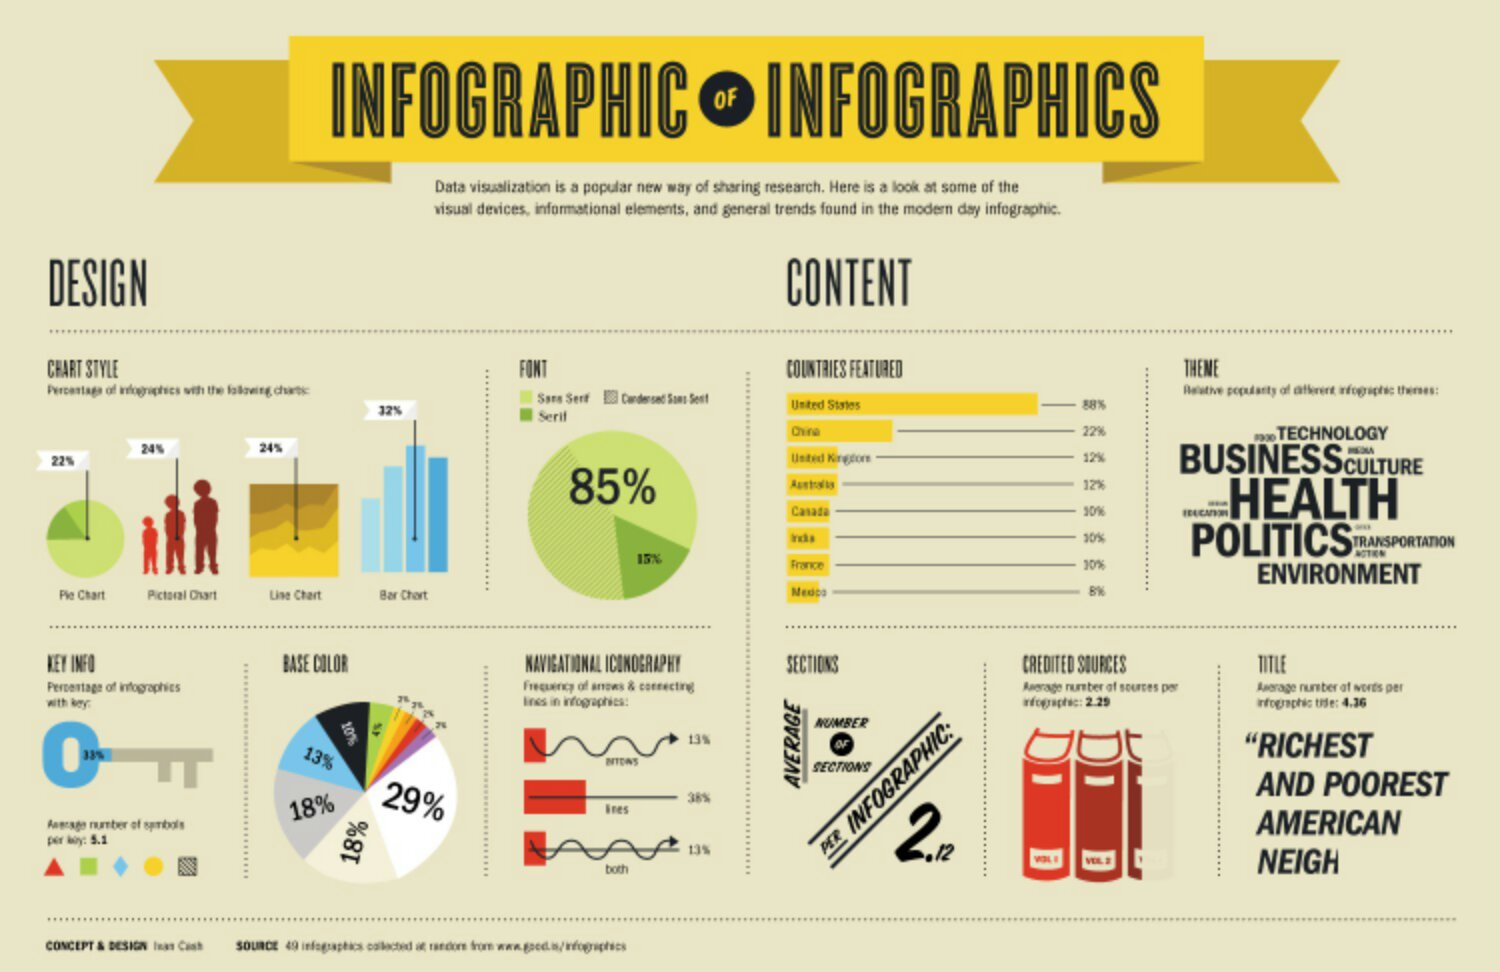 Best infographic design companies